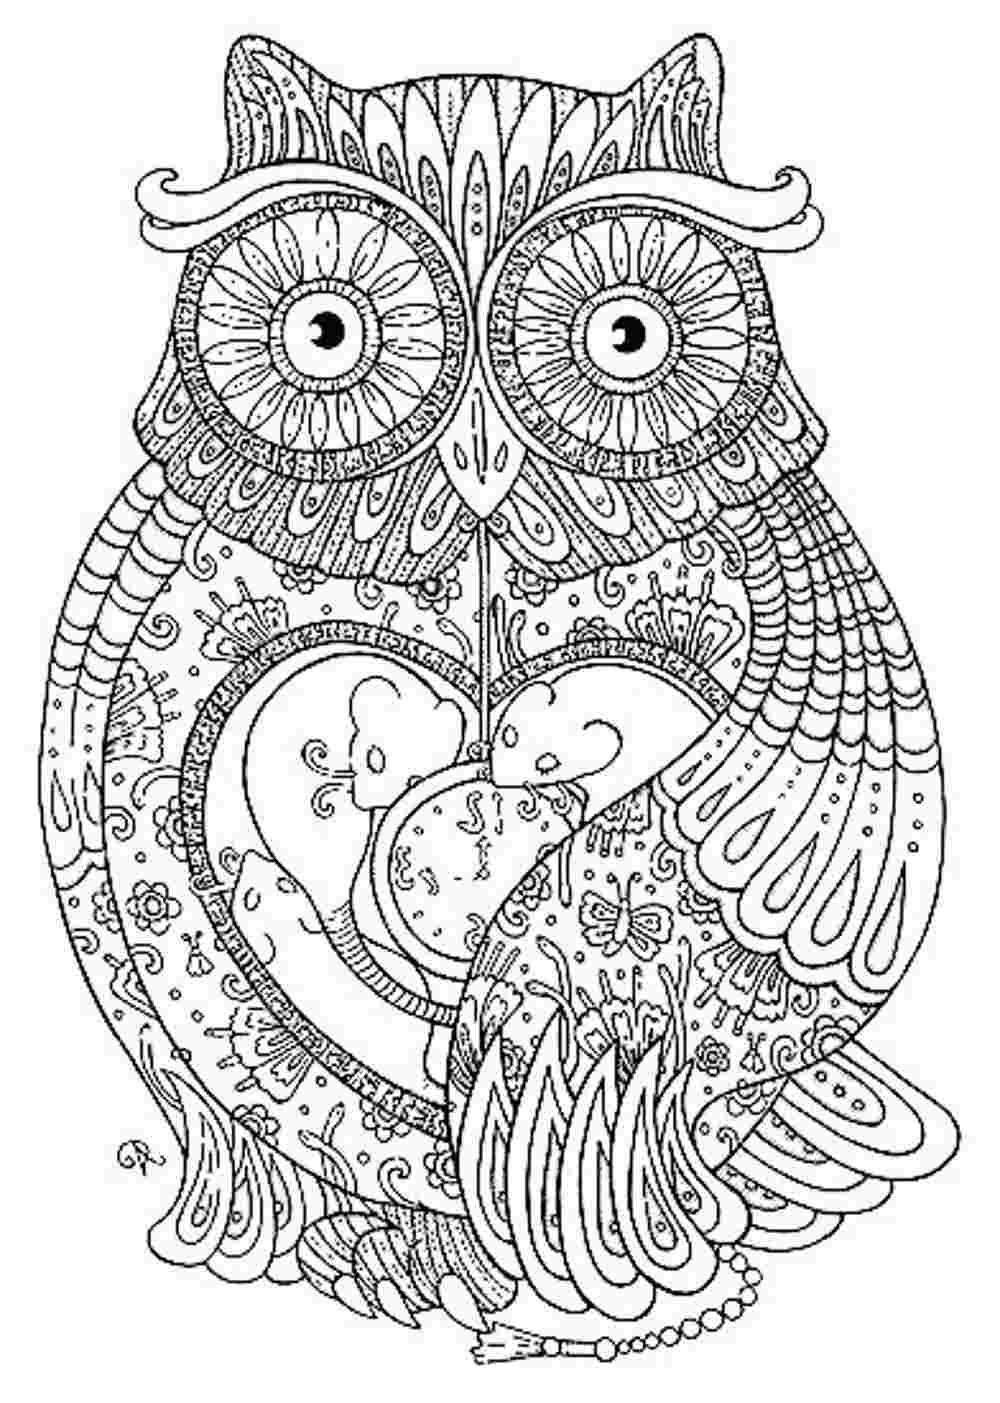 animal mandala coloring pages to download and print for free